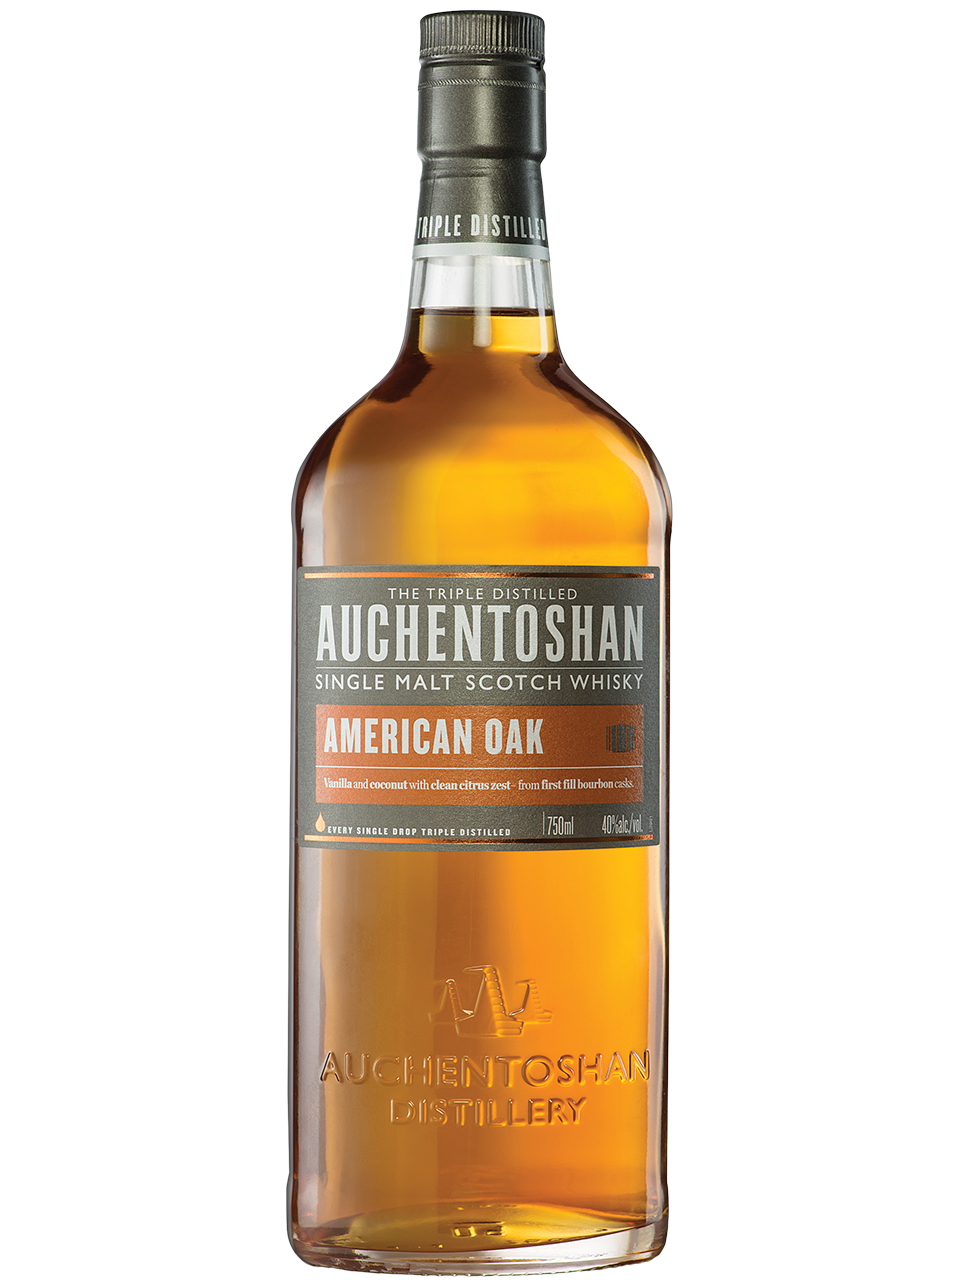 Auchentoshan American Oak Single Malt Scotch Whisk